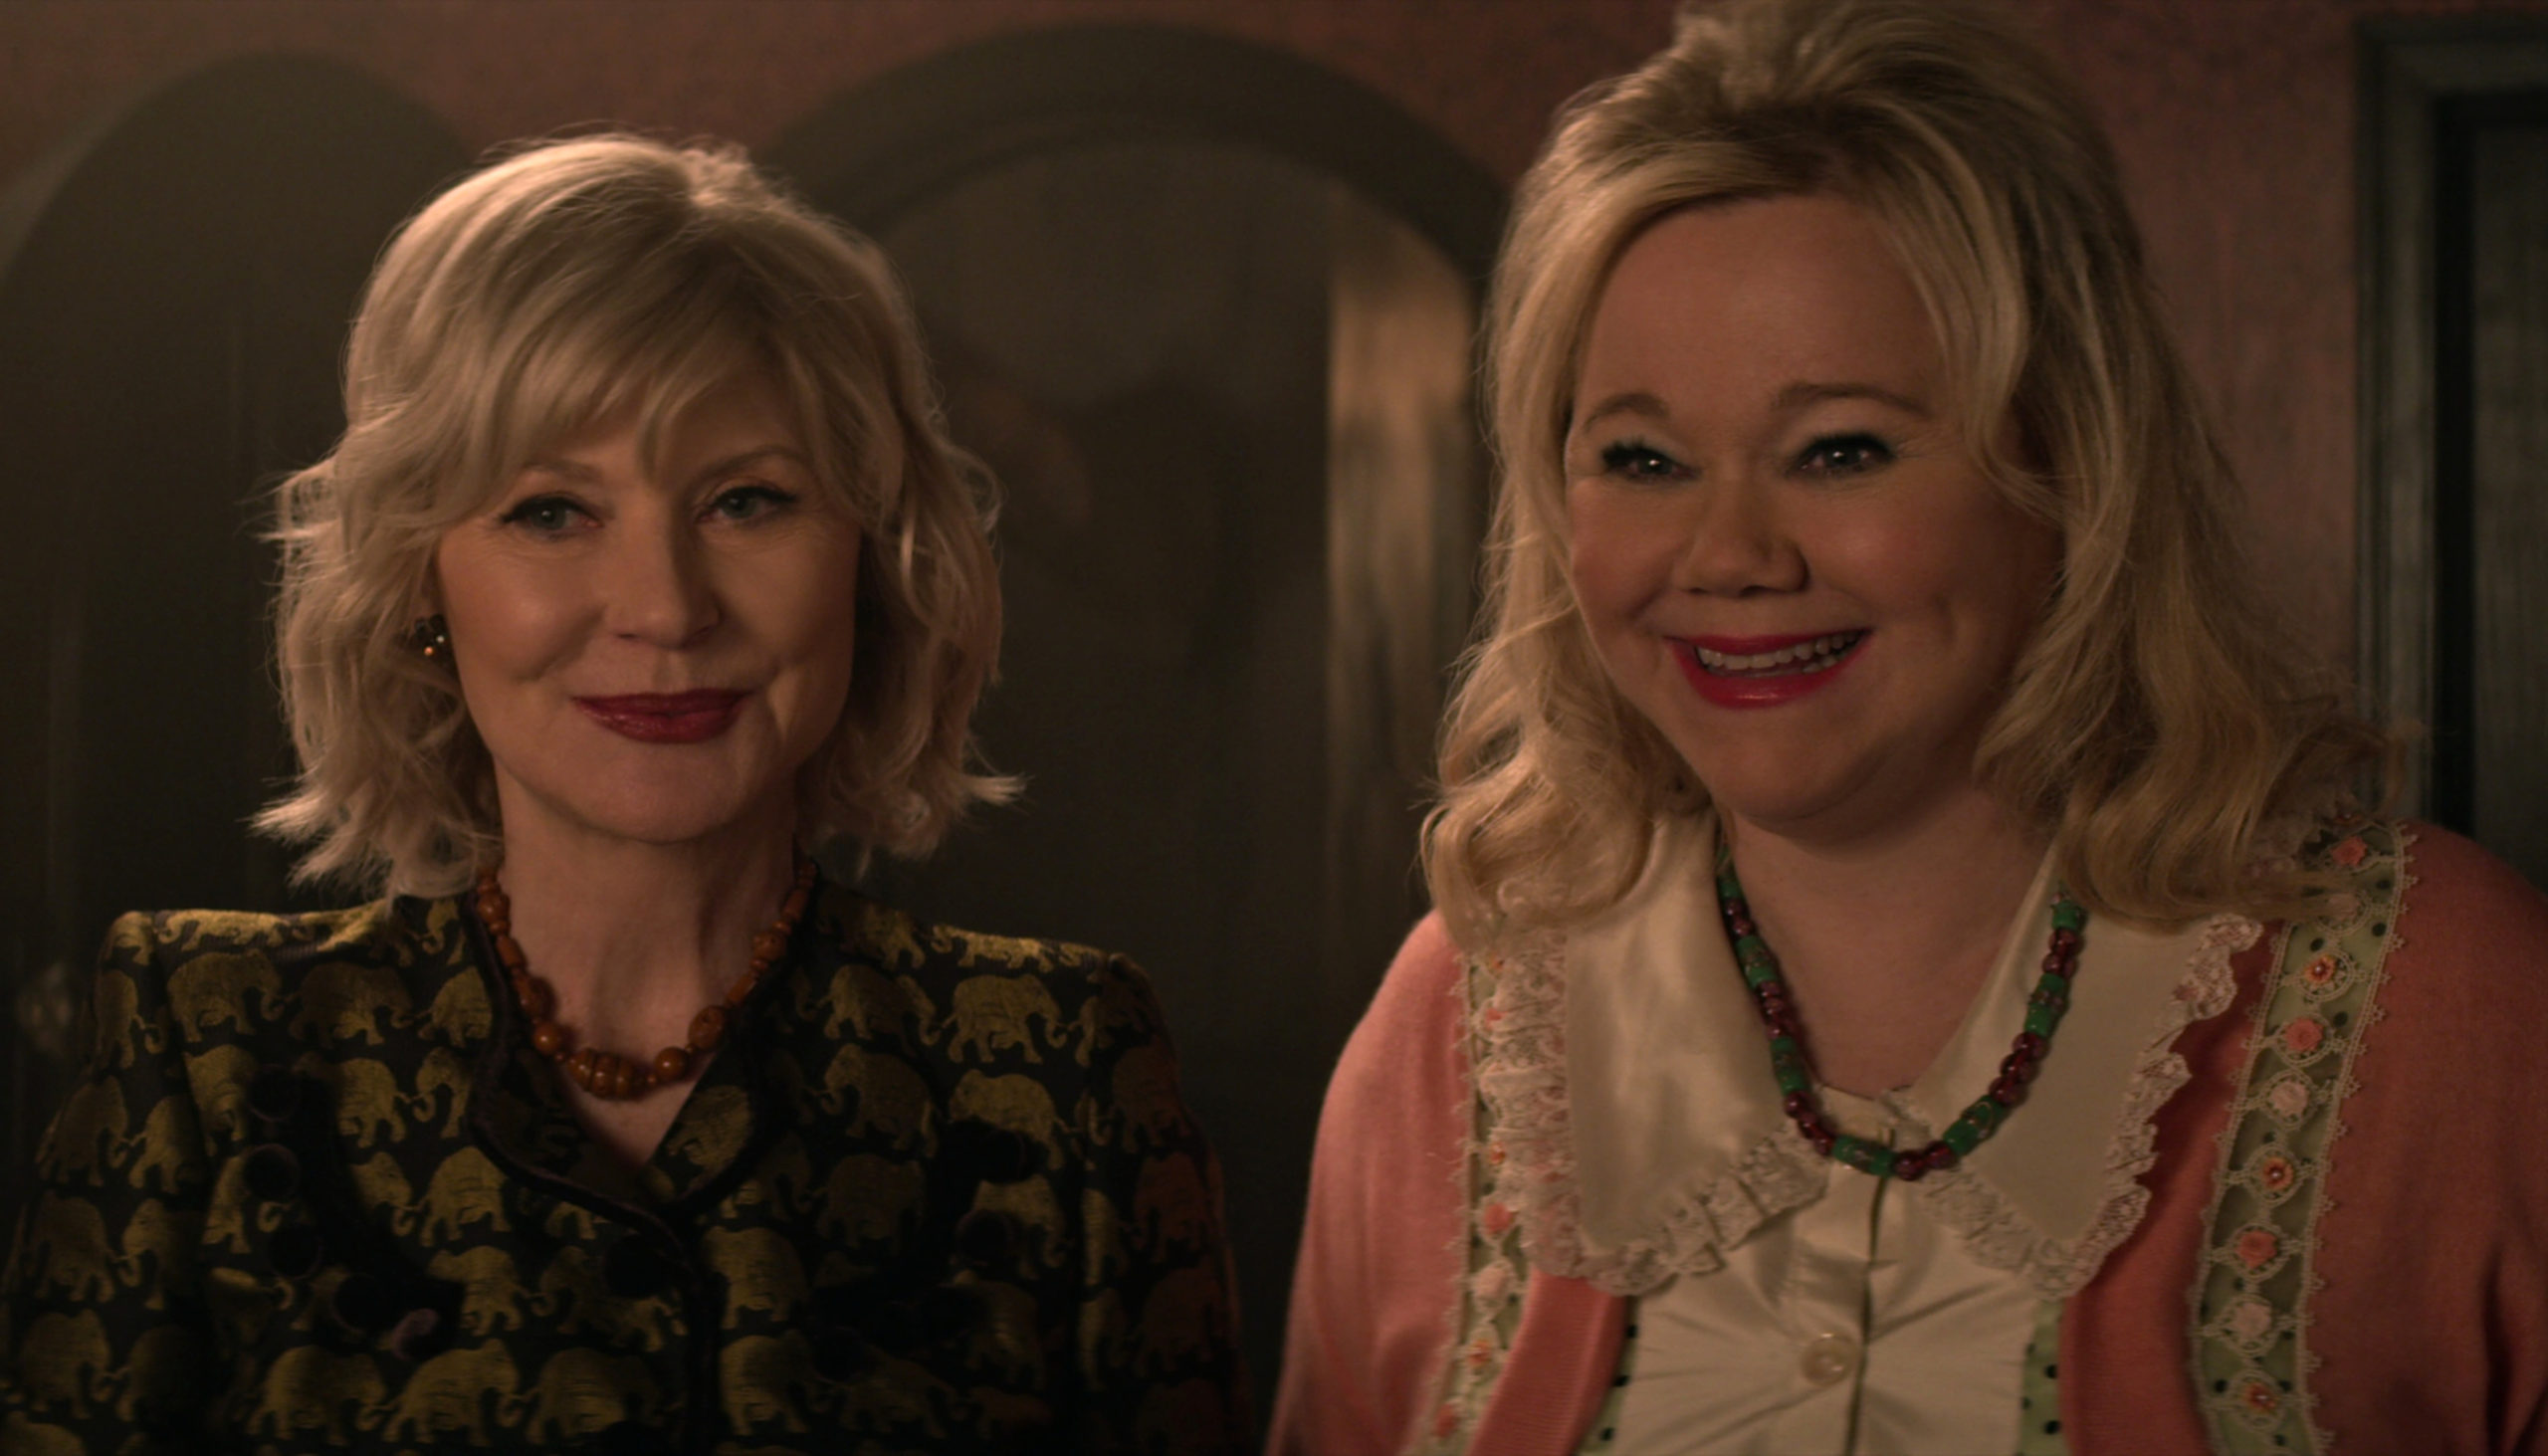 """Original Aunts from the '90s """"Sabrina"""" Series Will Appear in """"Chilling Adventures of Sabrina""""! [Video] - Bloody Disgusting"""